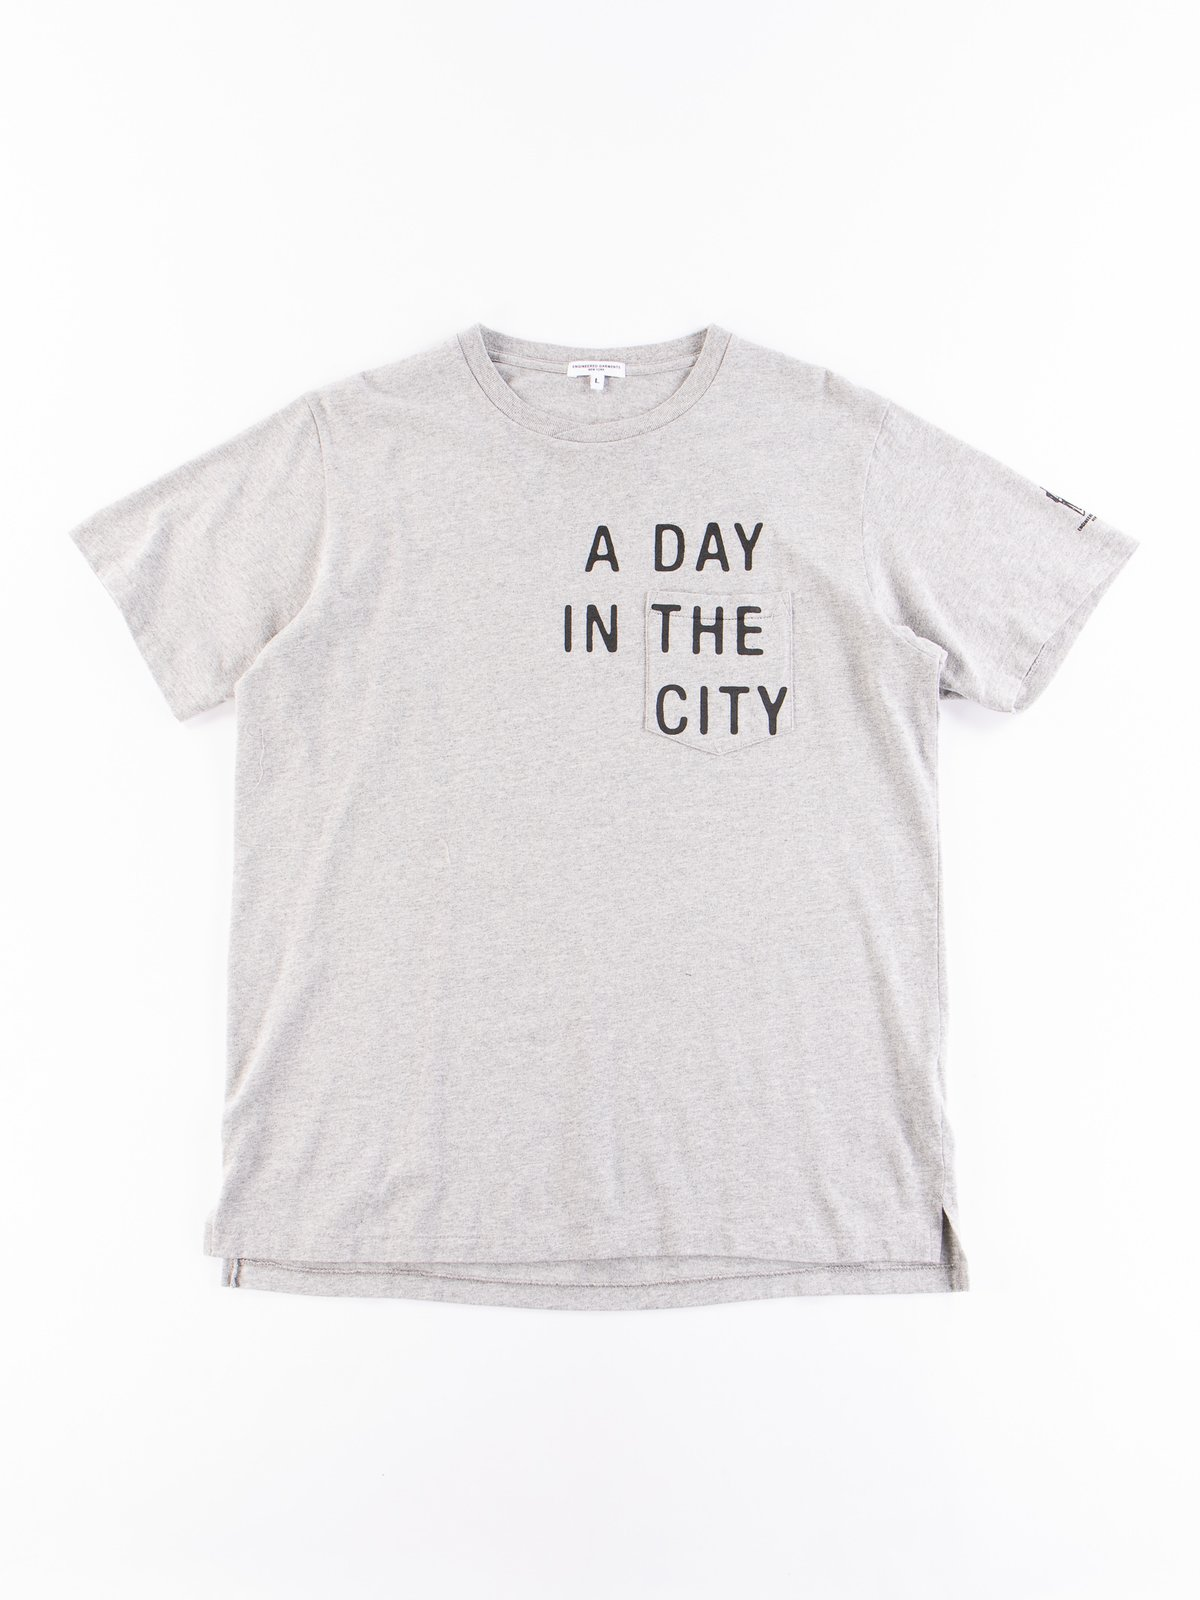 Grey A Day Printed Cross Crew Neck T–Shirt - Image 1